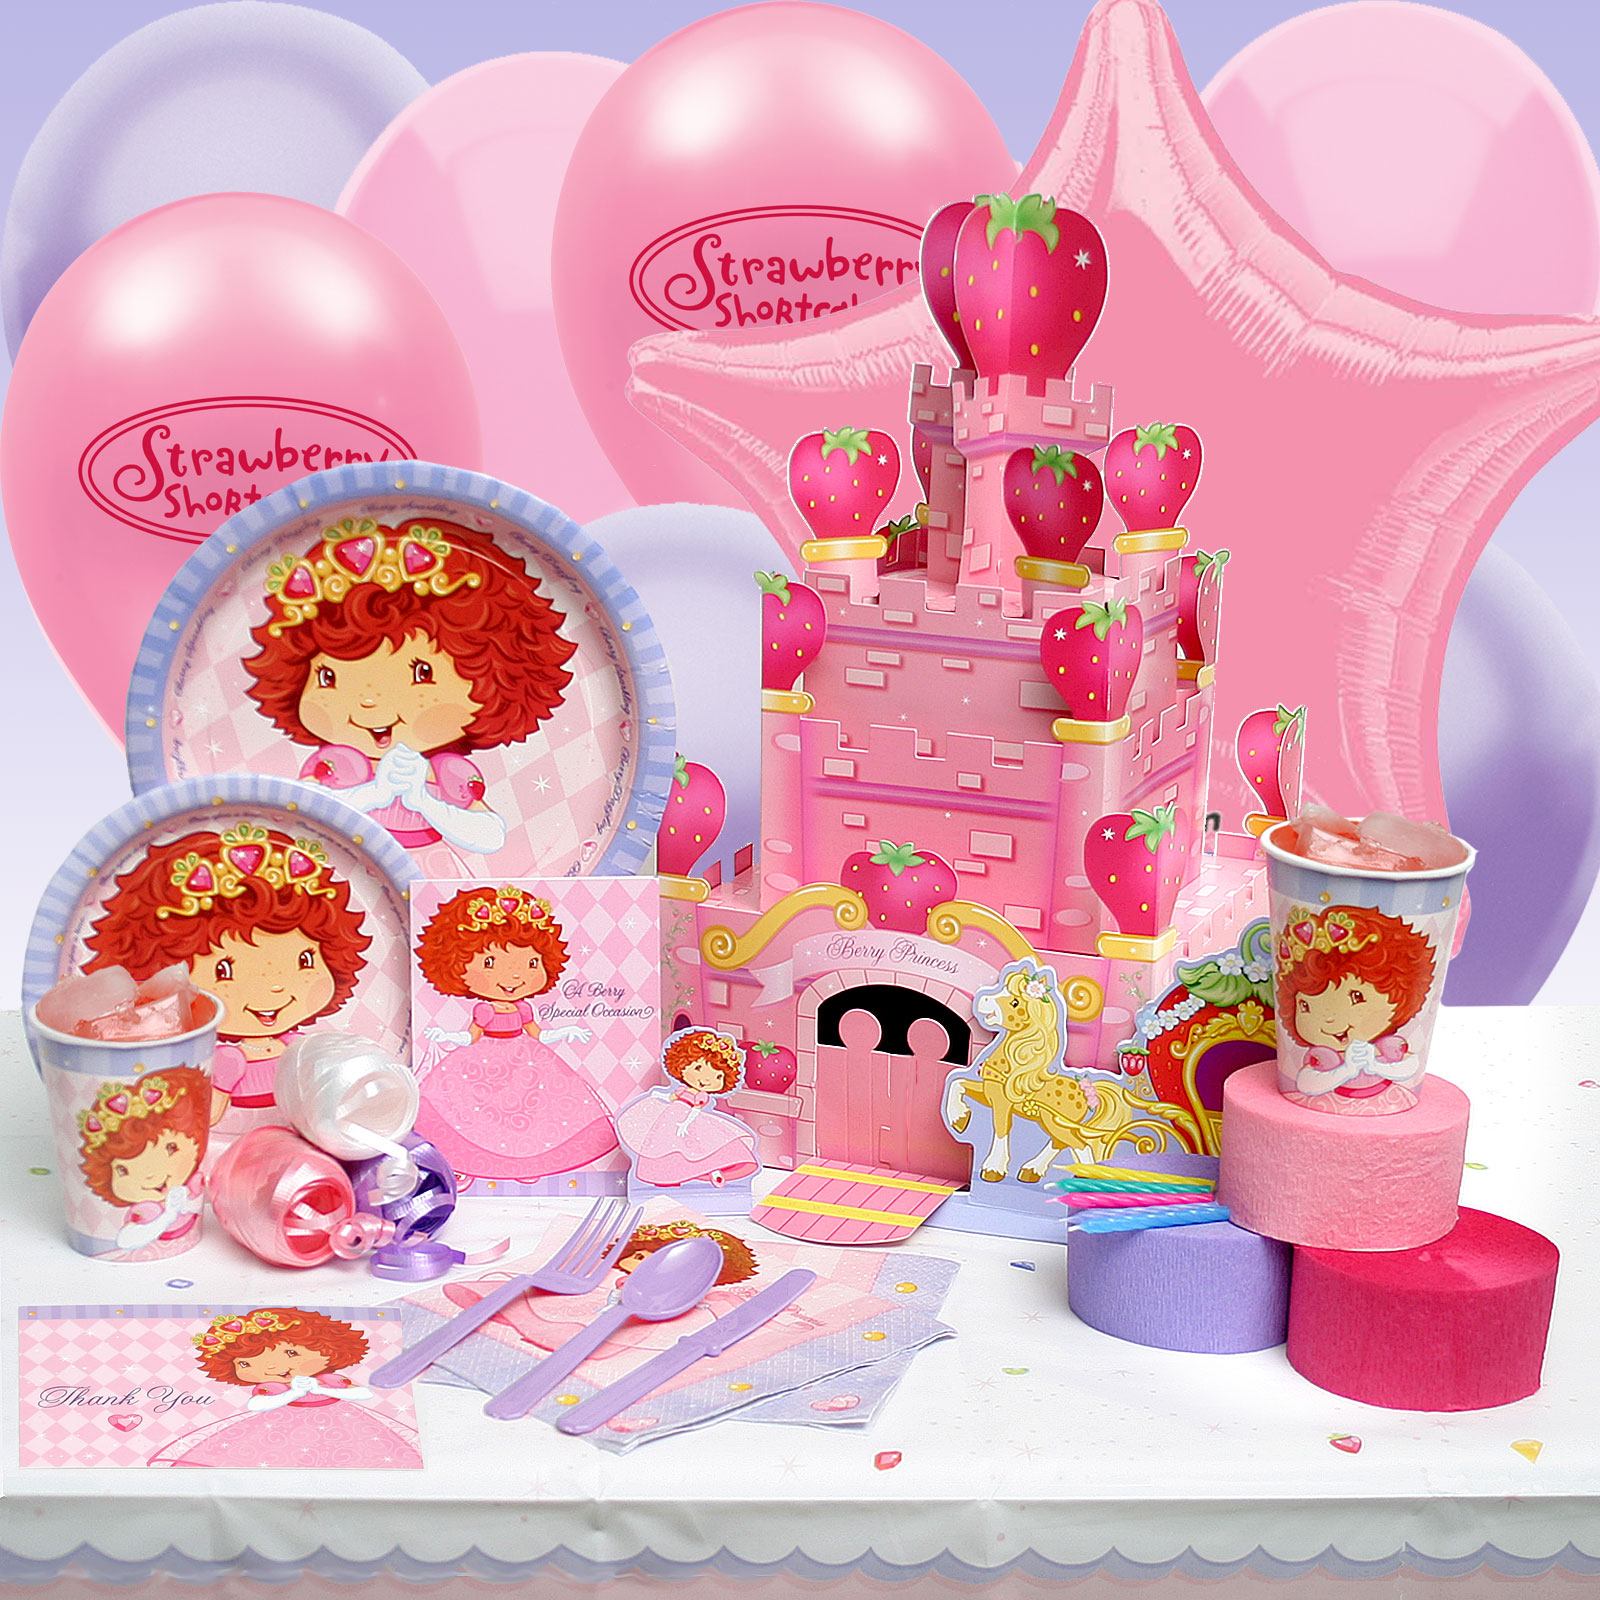 Strawberry Shortcake Party Supplies In Asia 3